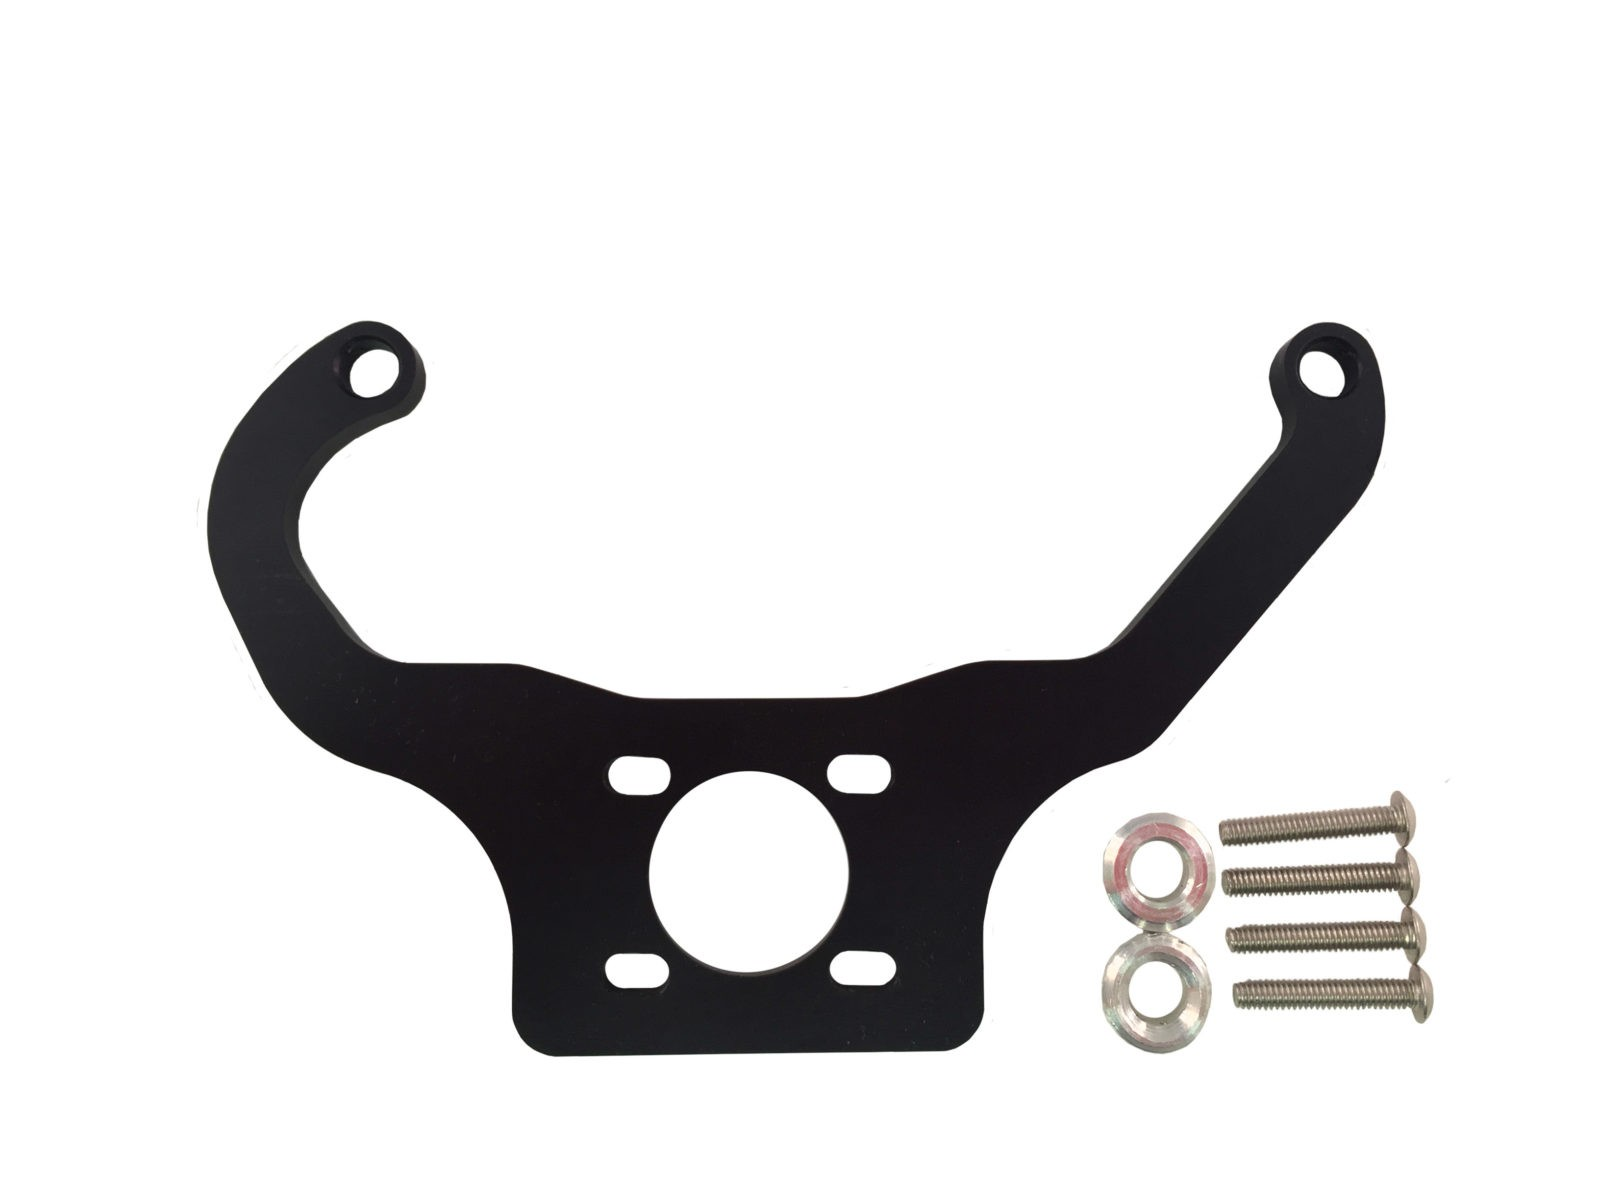 Black Fuel Pressure Regulator Mounting Brackets Holley Quickfuel made by PRP Racing Products